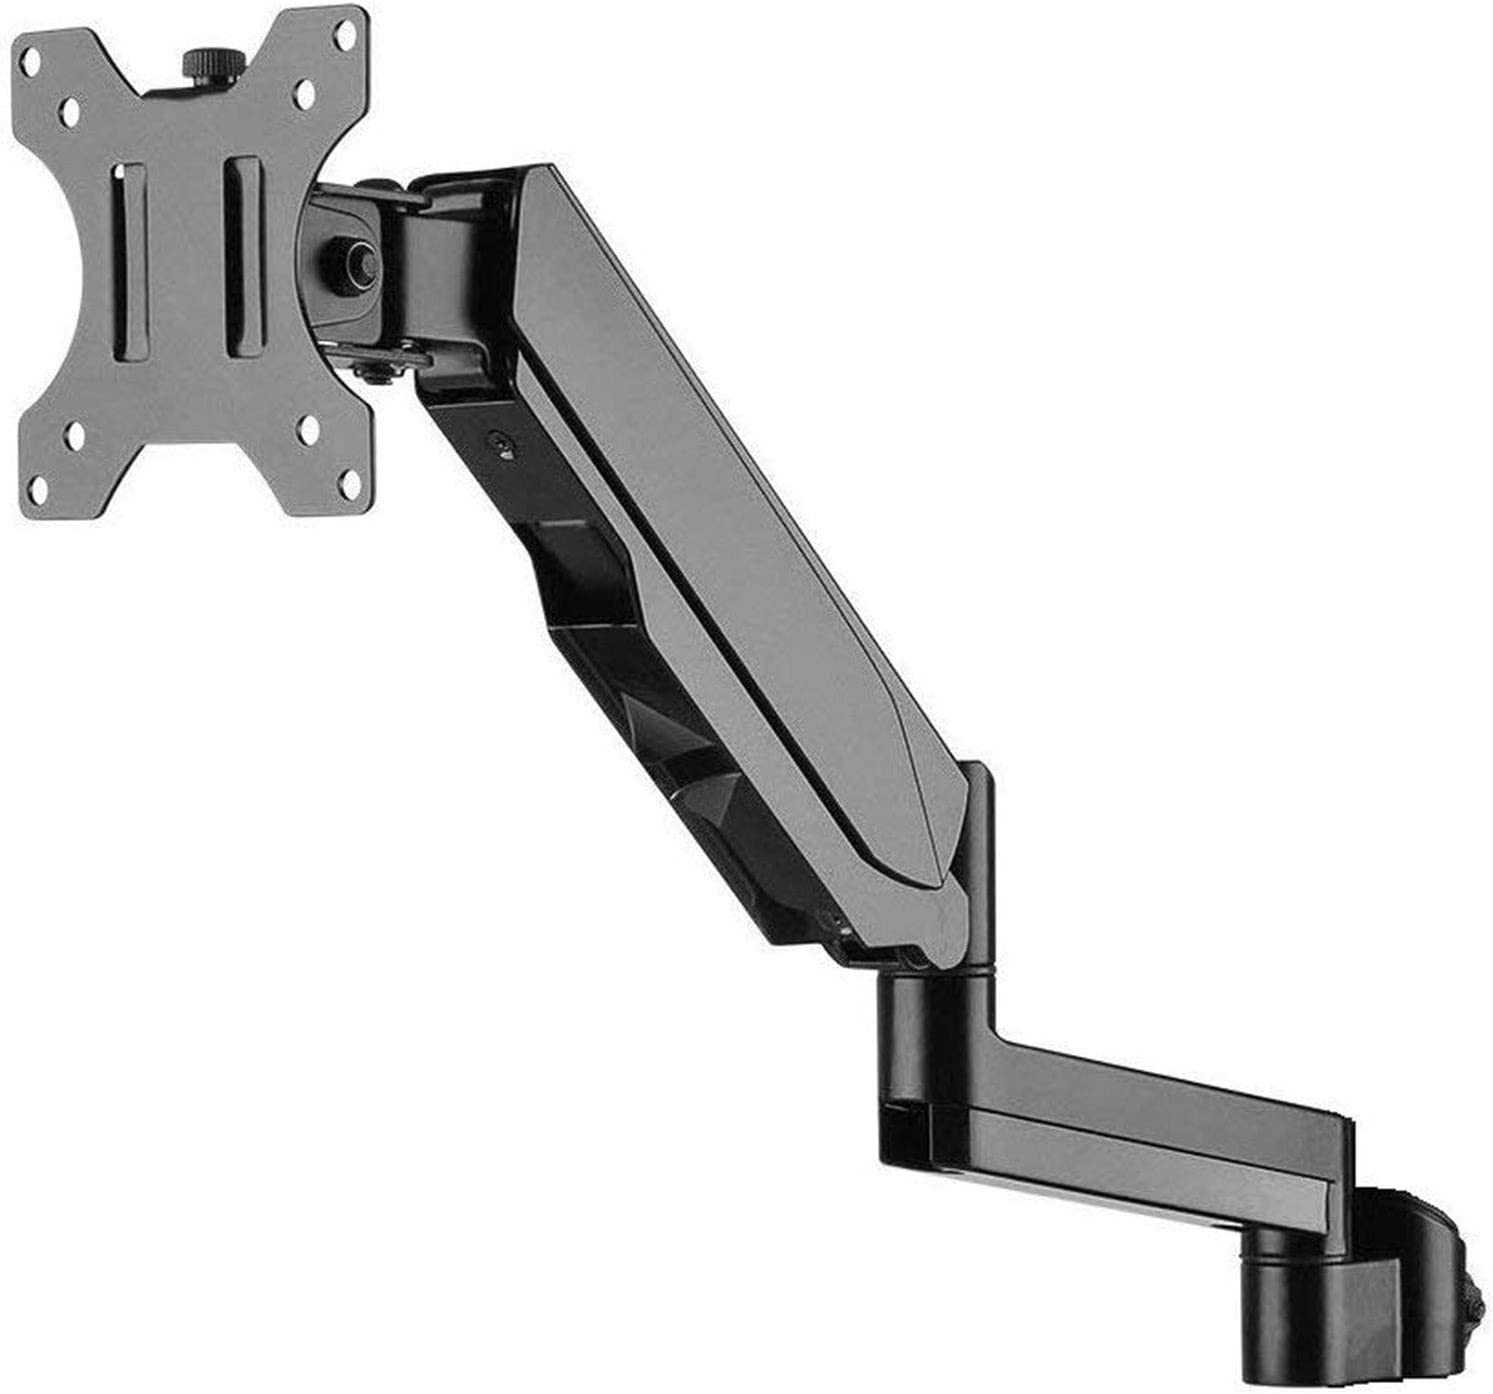 WALI Premium Single Fully Adjustable Gas Spring Arm for WALI Monitor Mounting System (GSAM001), Black